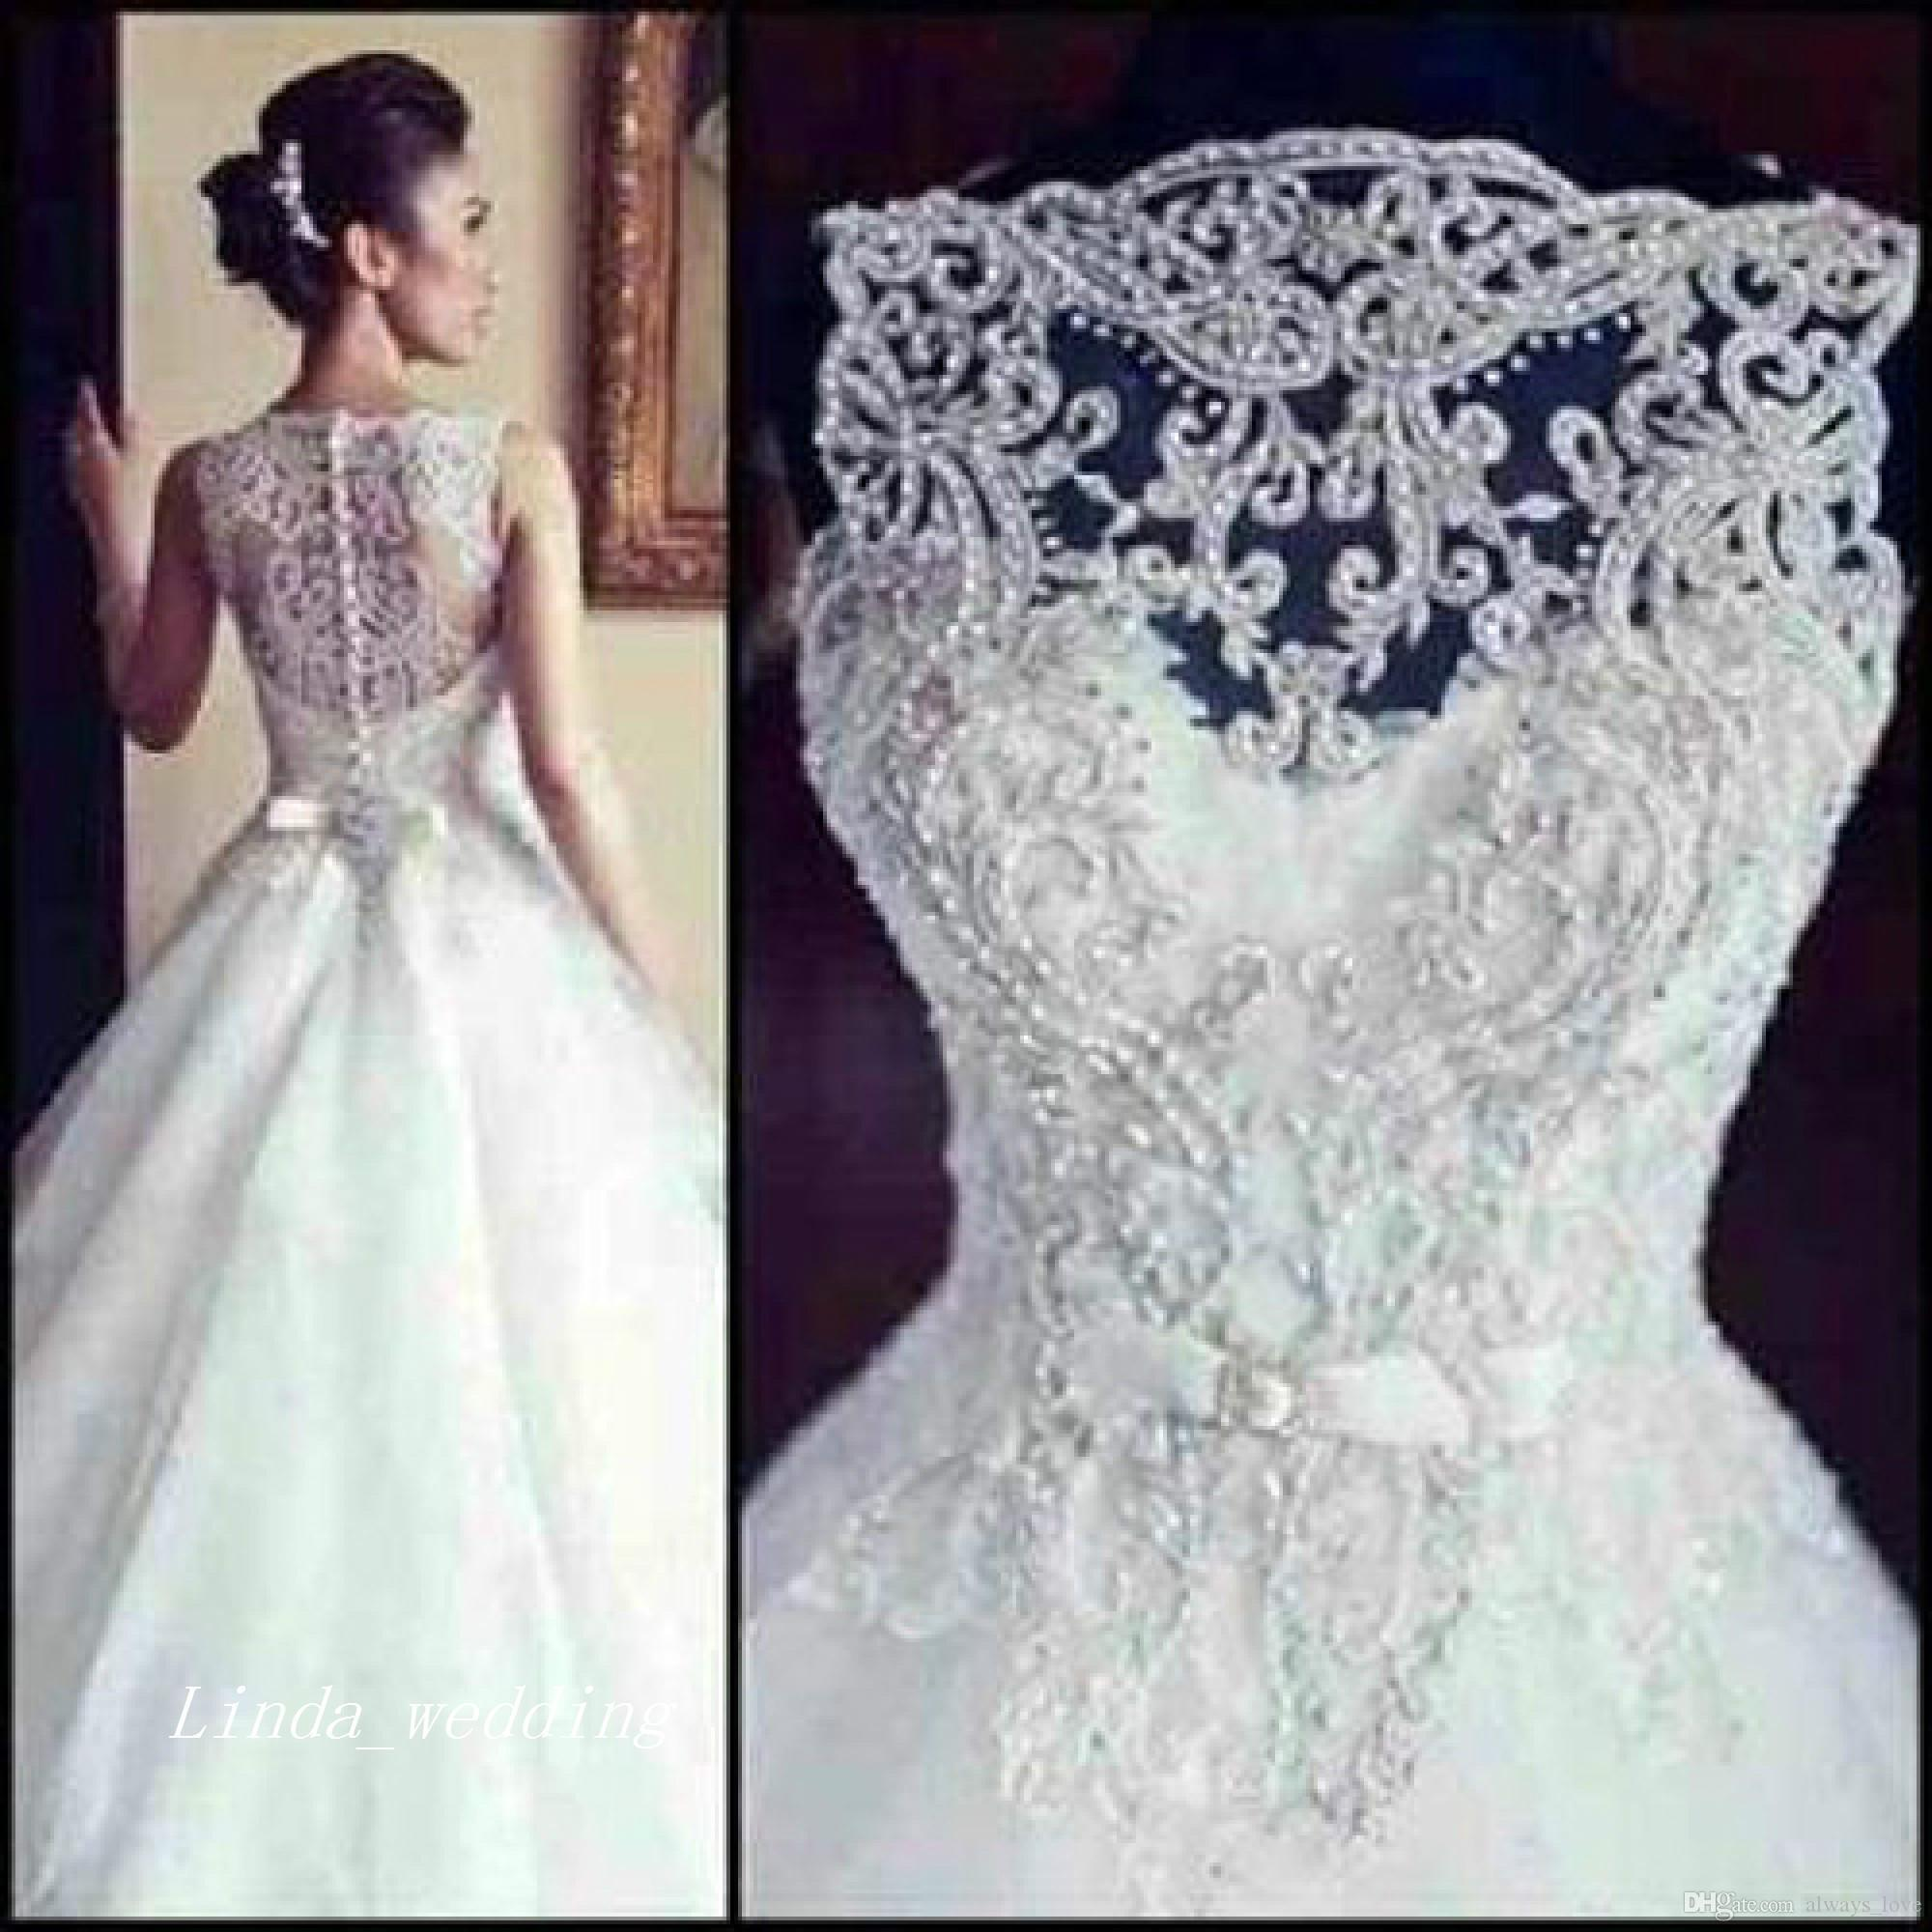 Discount Gorgeous Designer Bateau Neck Wedding Gown Covered In Crystal Pearls See Through Princess Wedding Dress Bridal Gown Anthropologie Wedding Dresses Bridal Gowns Online From Always Love 1 794 98 Dhgate Com